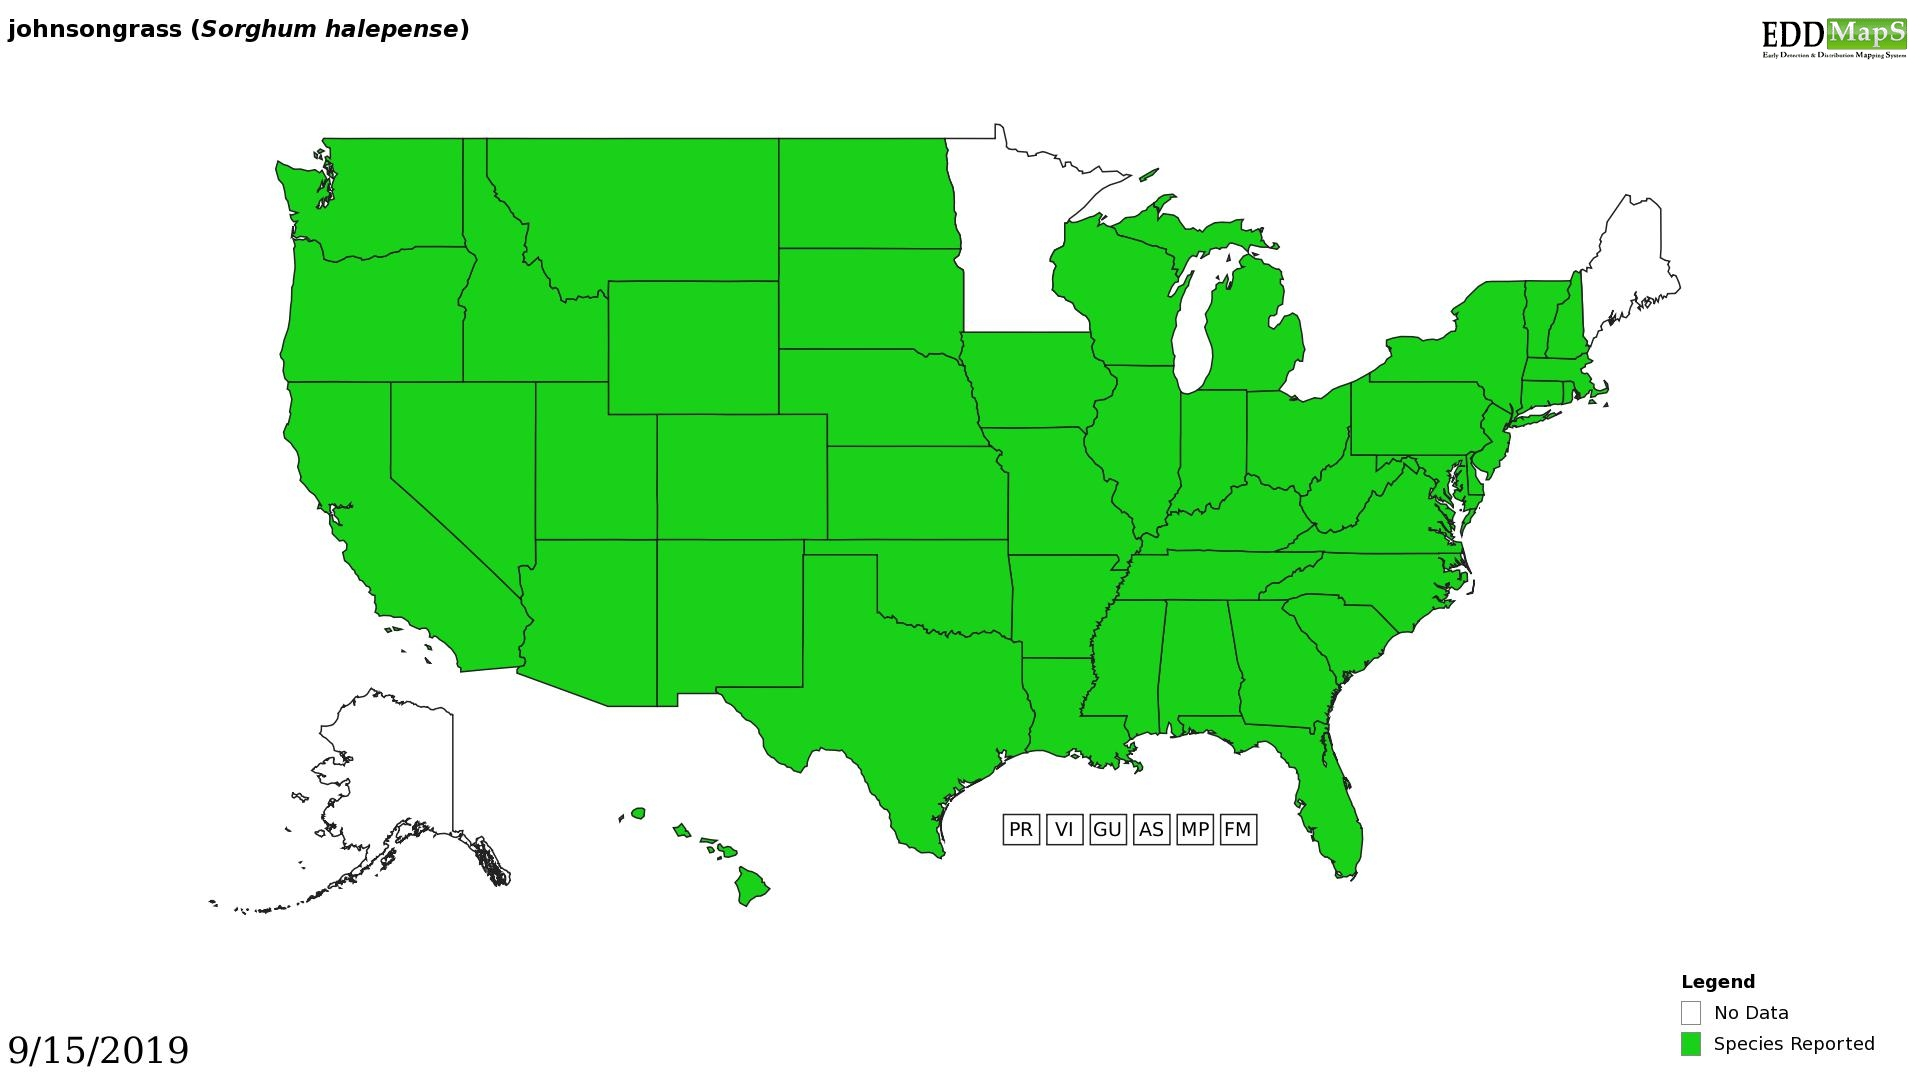 Johnsongrass distribution - United States